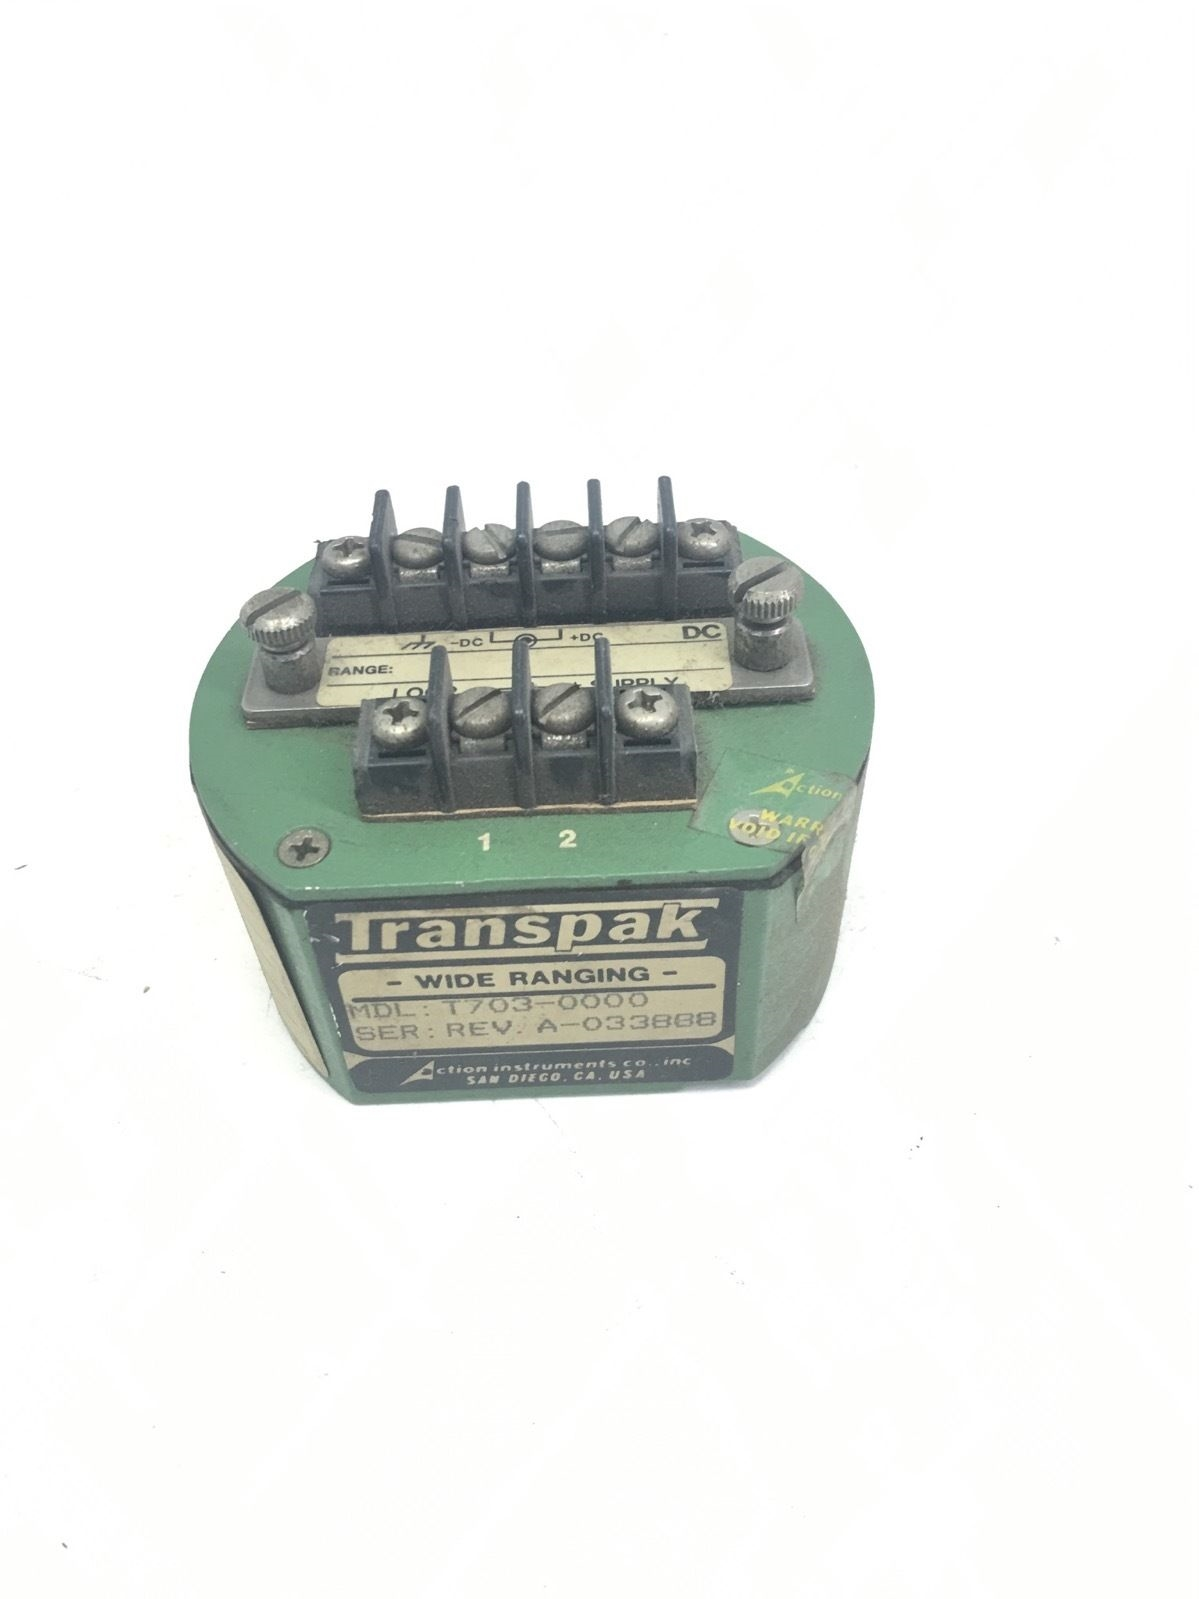 NEW TRANSPAK WIDE RANGING TRANSMITTER T703-0000, REVISION A, FAST SHIPPING, F229 1